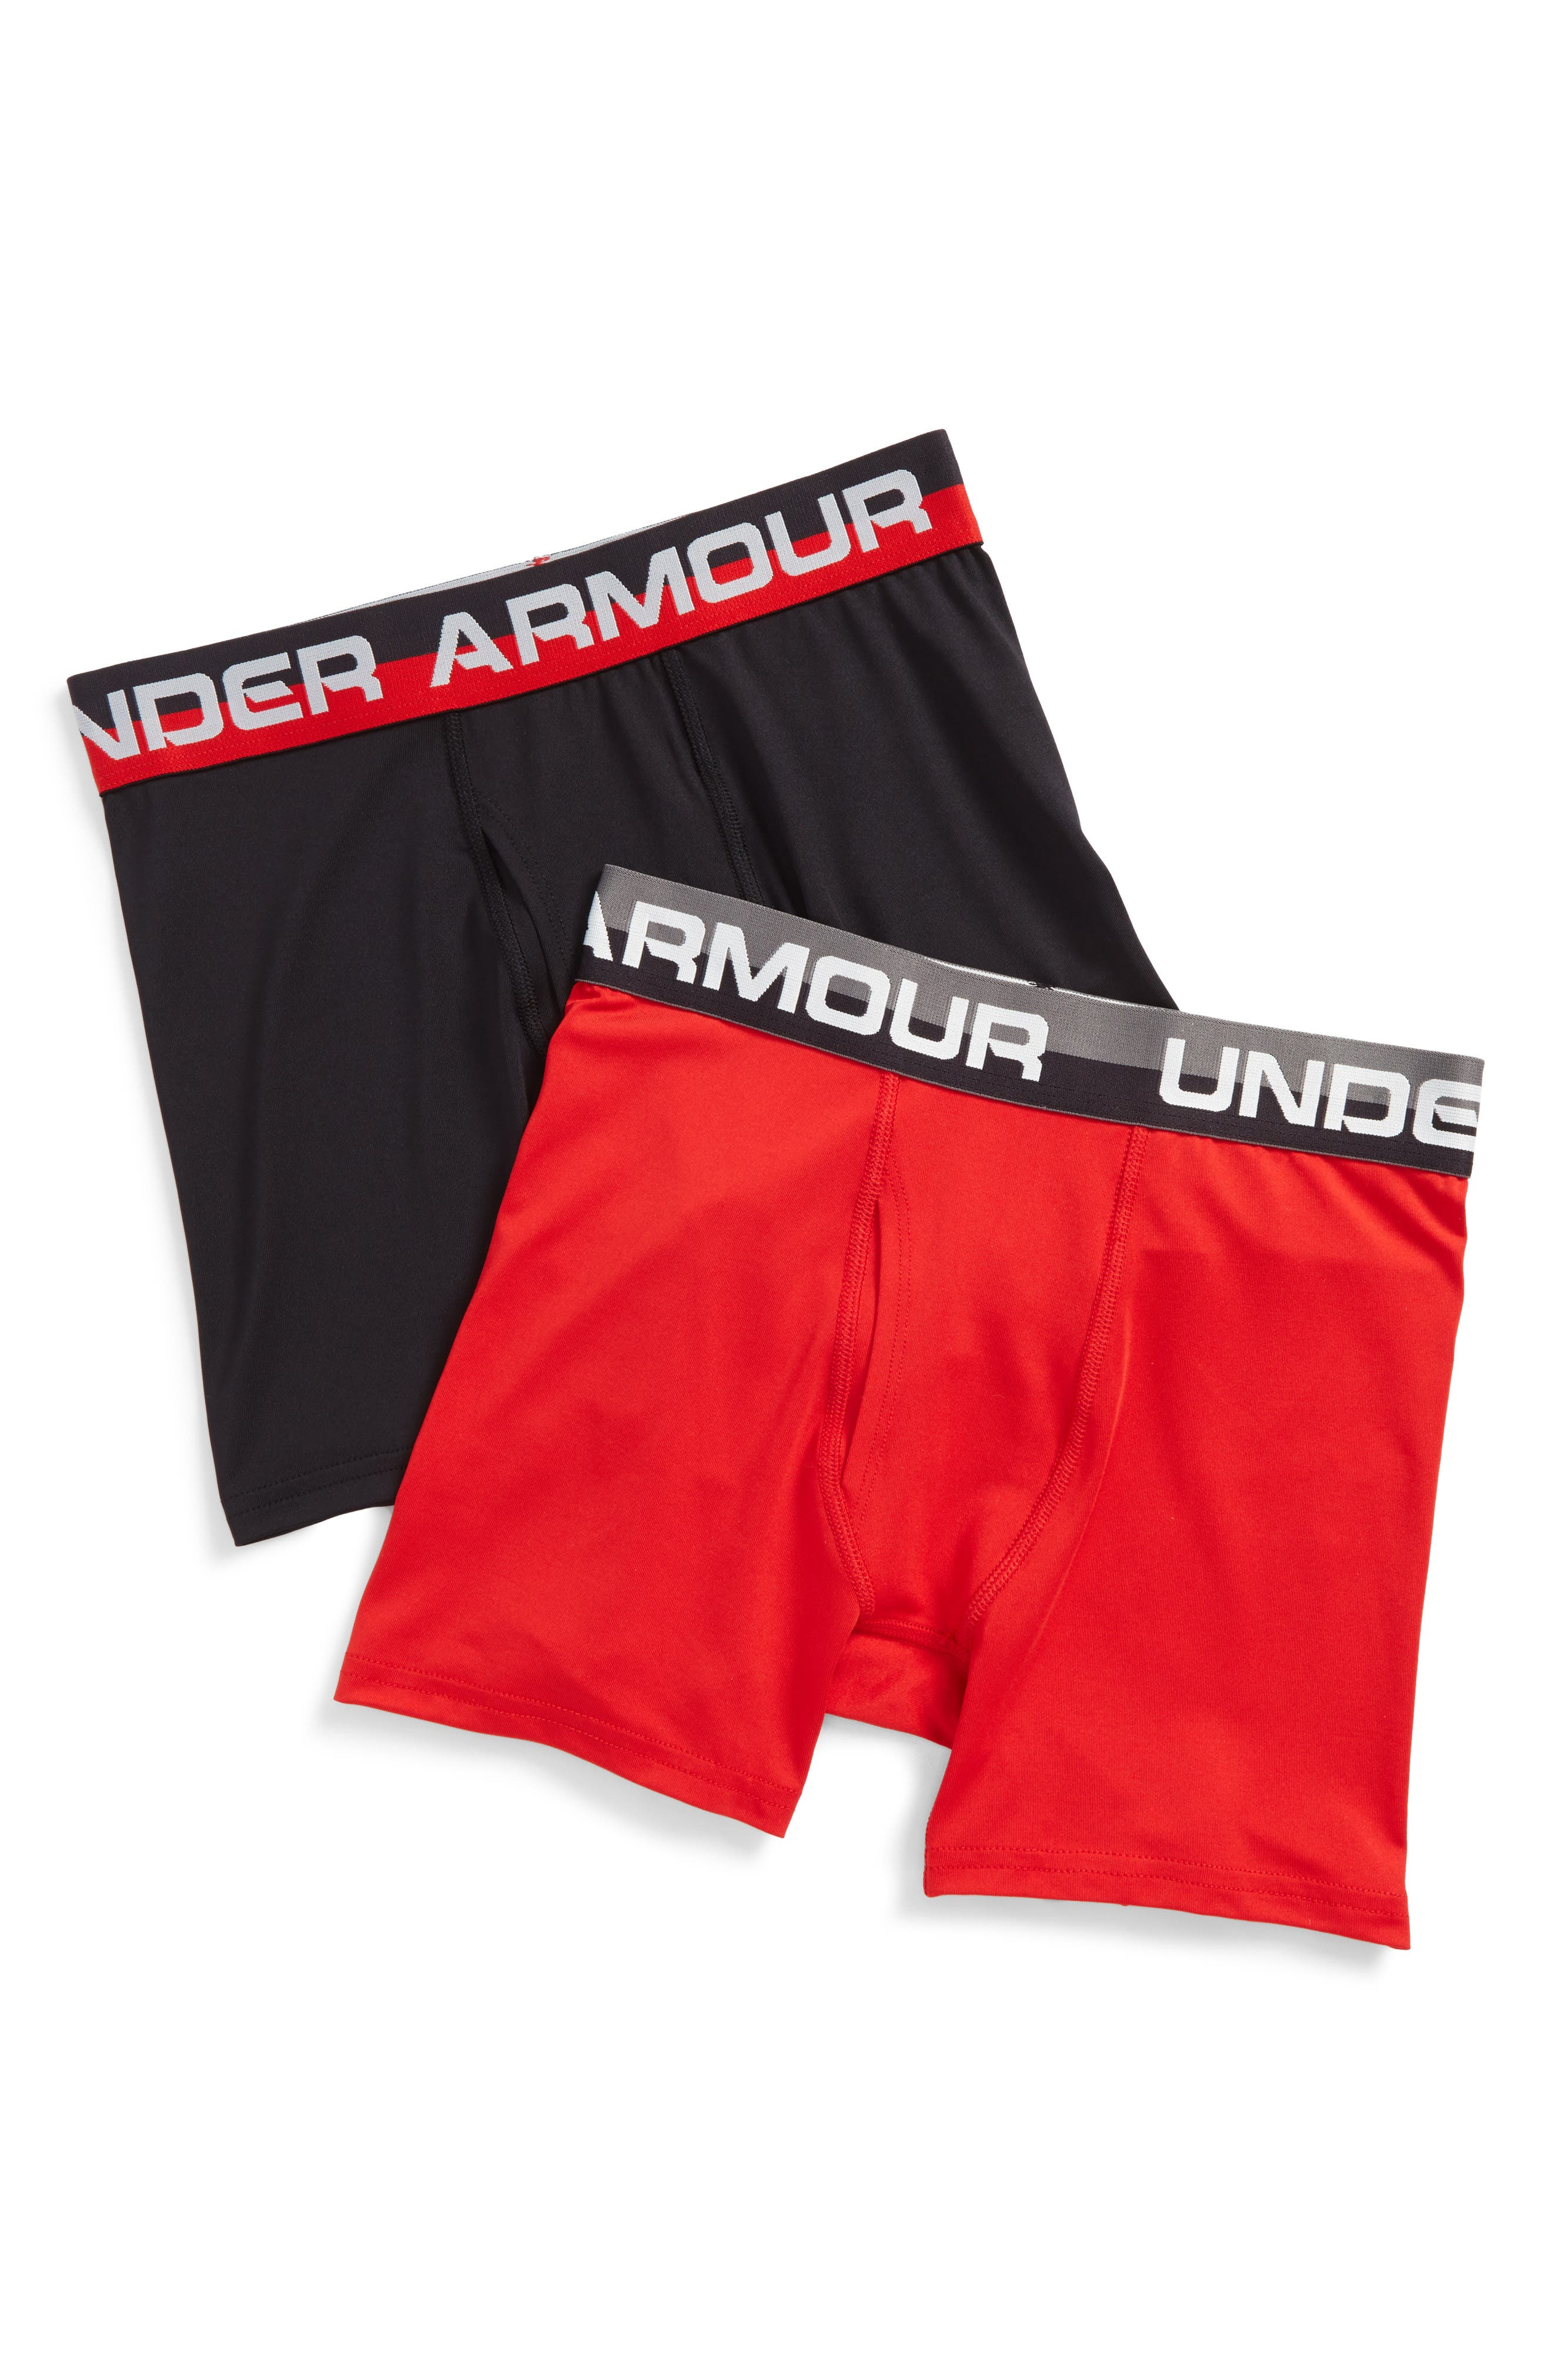 2-Pack Solid Performance Briefs,                         Main,                         color, Red/ Black